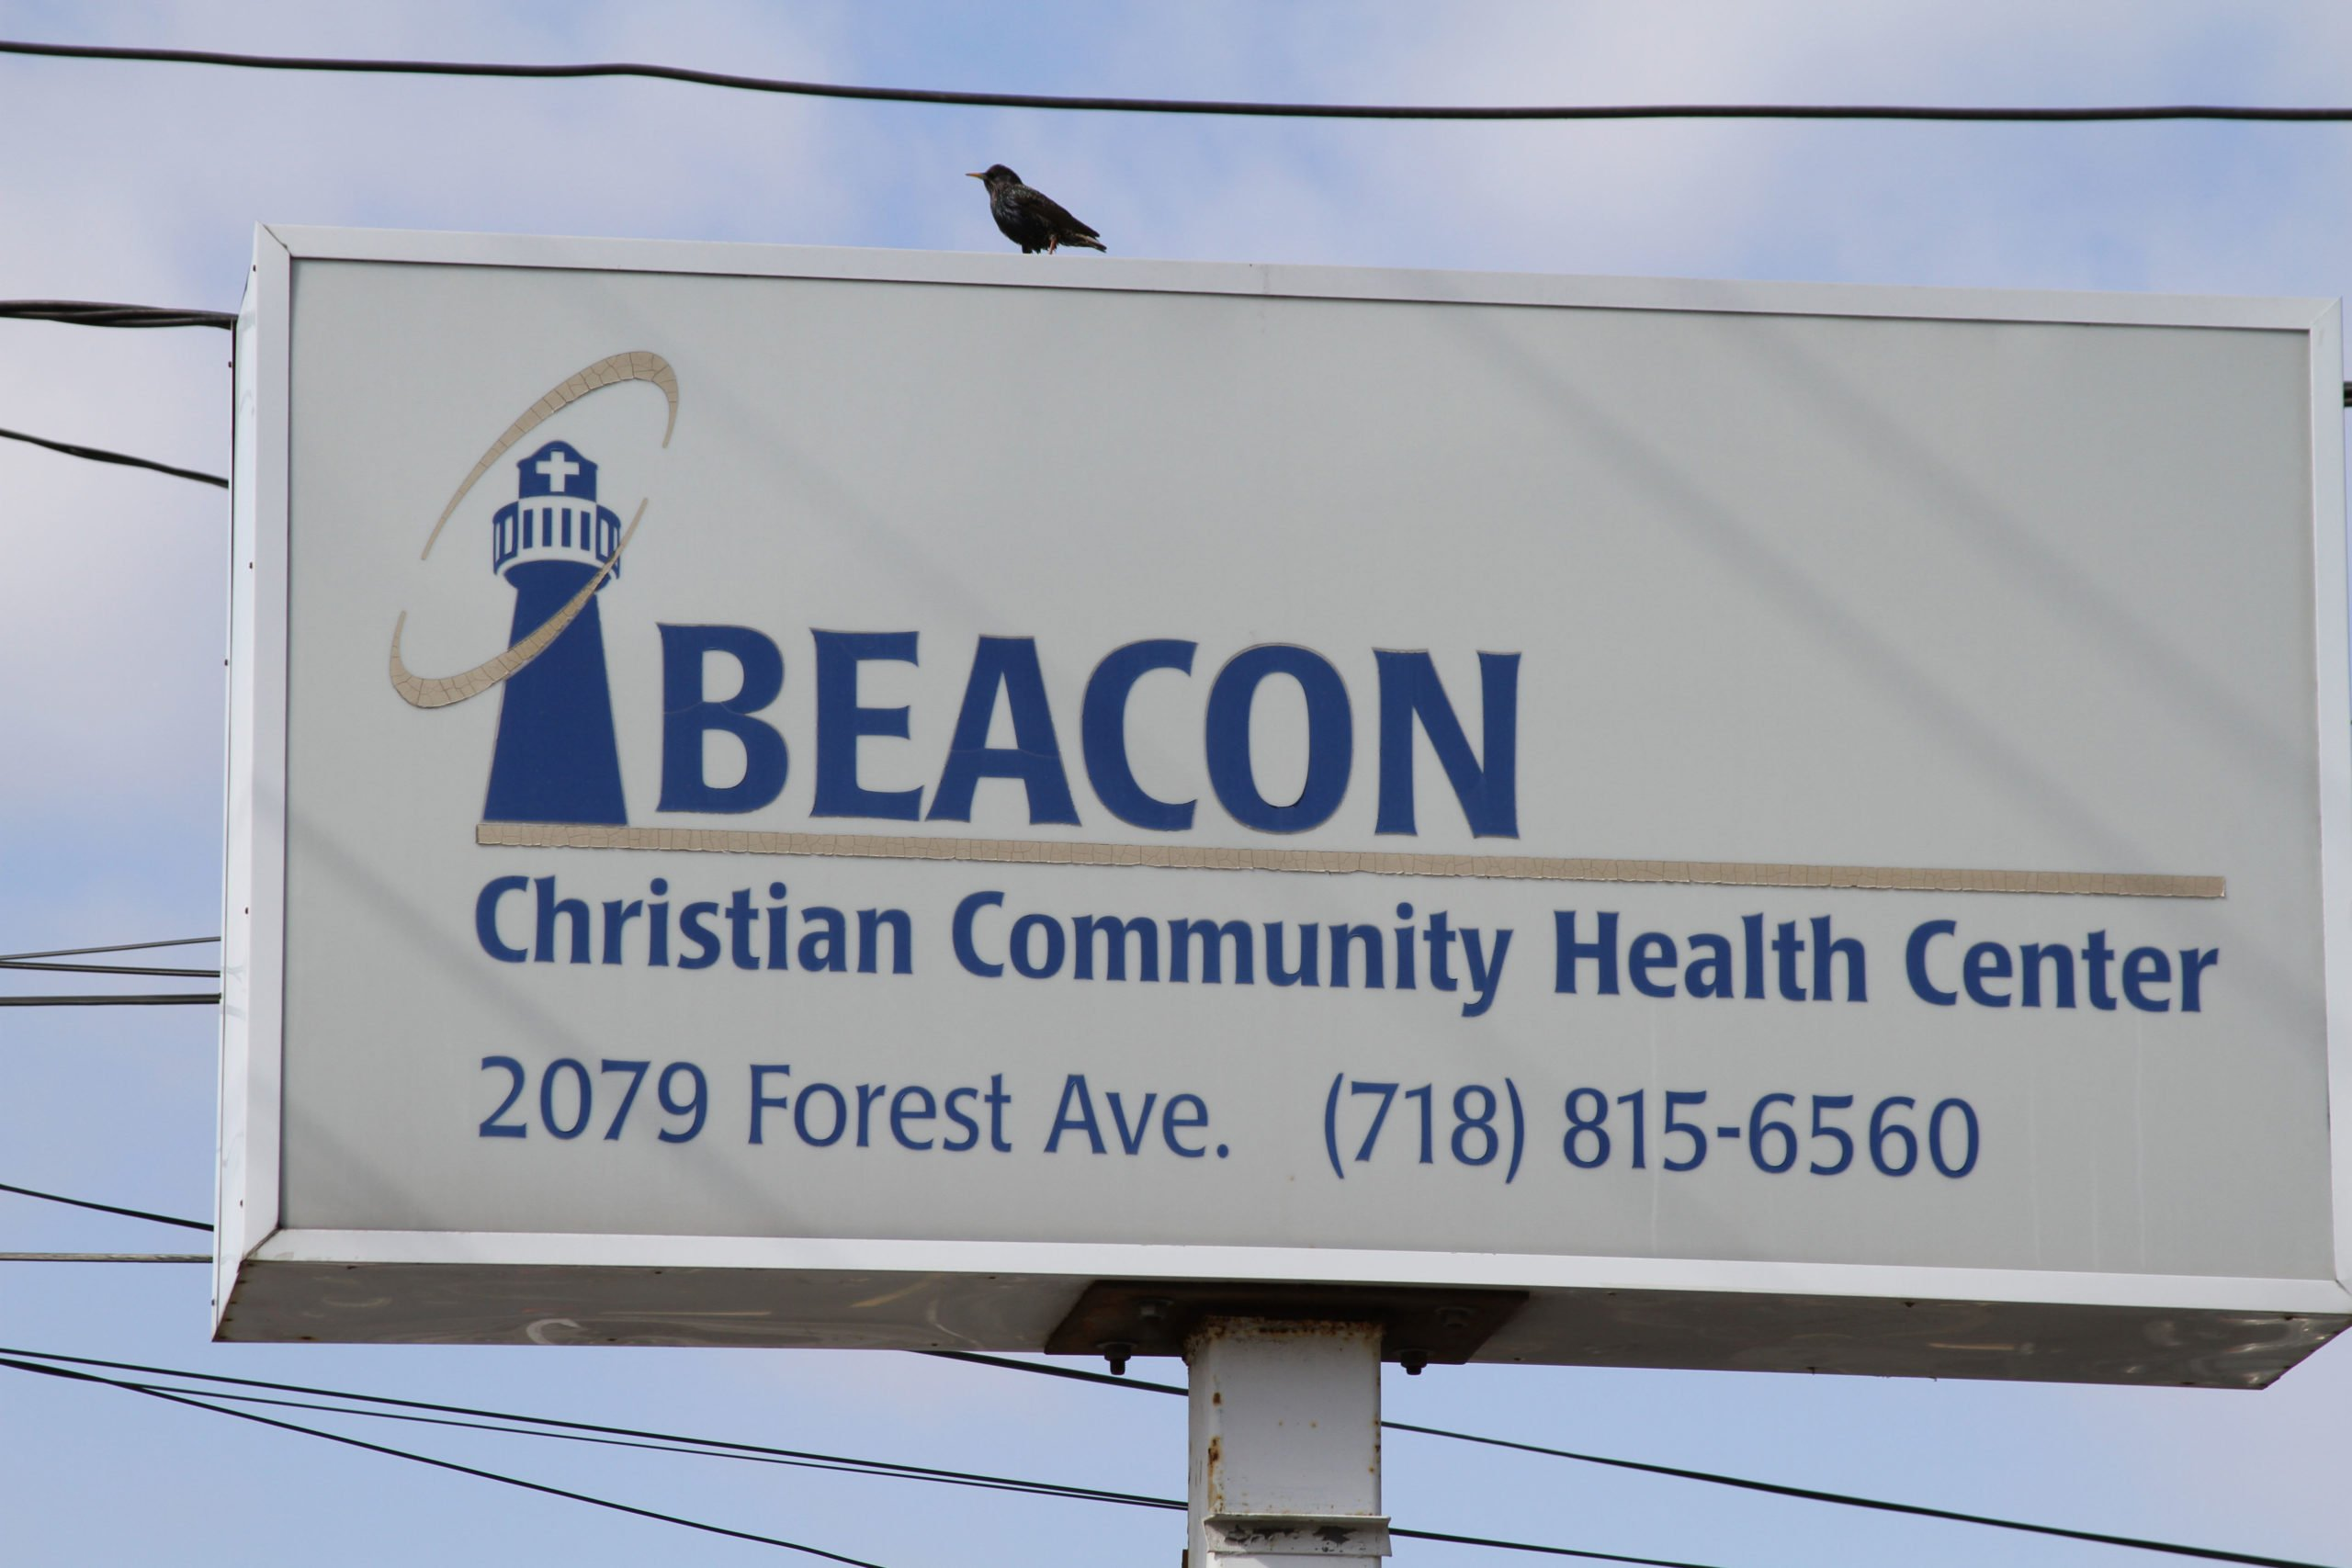 Beacon Christian Community Health Center's Outdoor Flu Vaccination Event Provides Free Immunity Health Services to Staten Island Residents